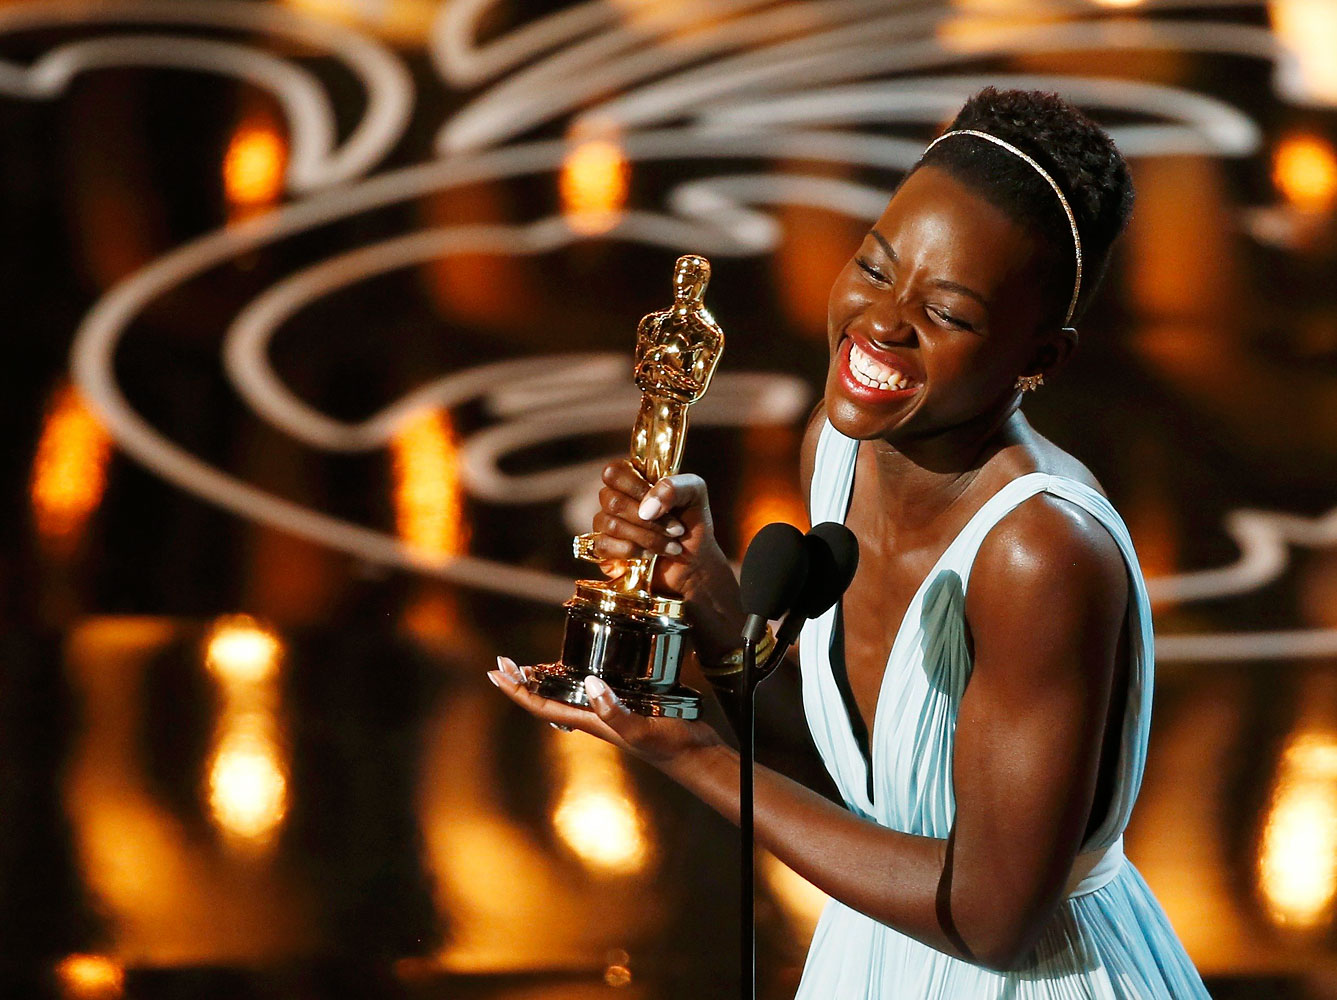 Lupita Nyong'o, best supporting actress winner for her role in  12 Years a Slave , speaks on stage at the 86th Academy Awards in Hollywood, California March 2, 2014.